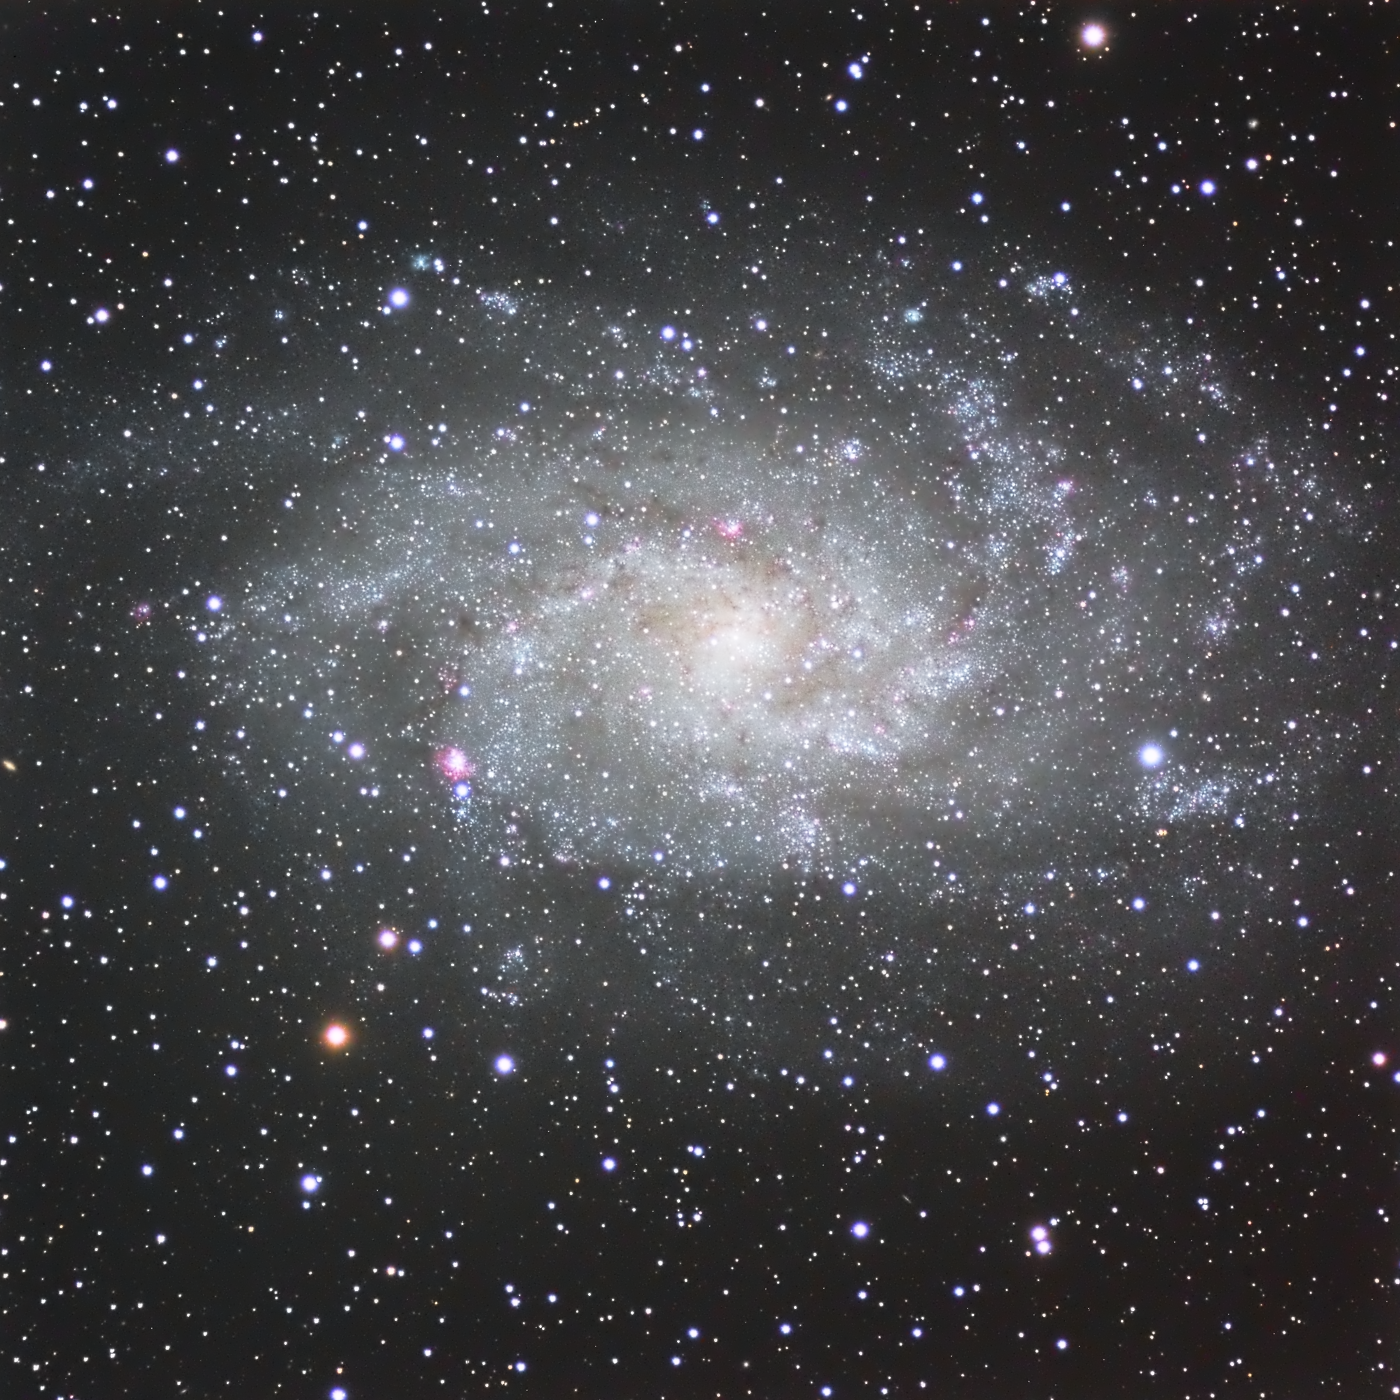 La galaxie du triangle M33